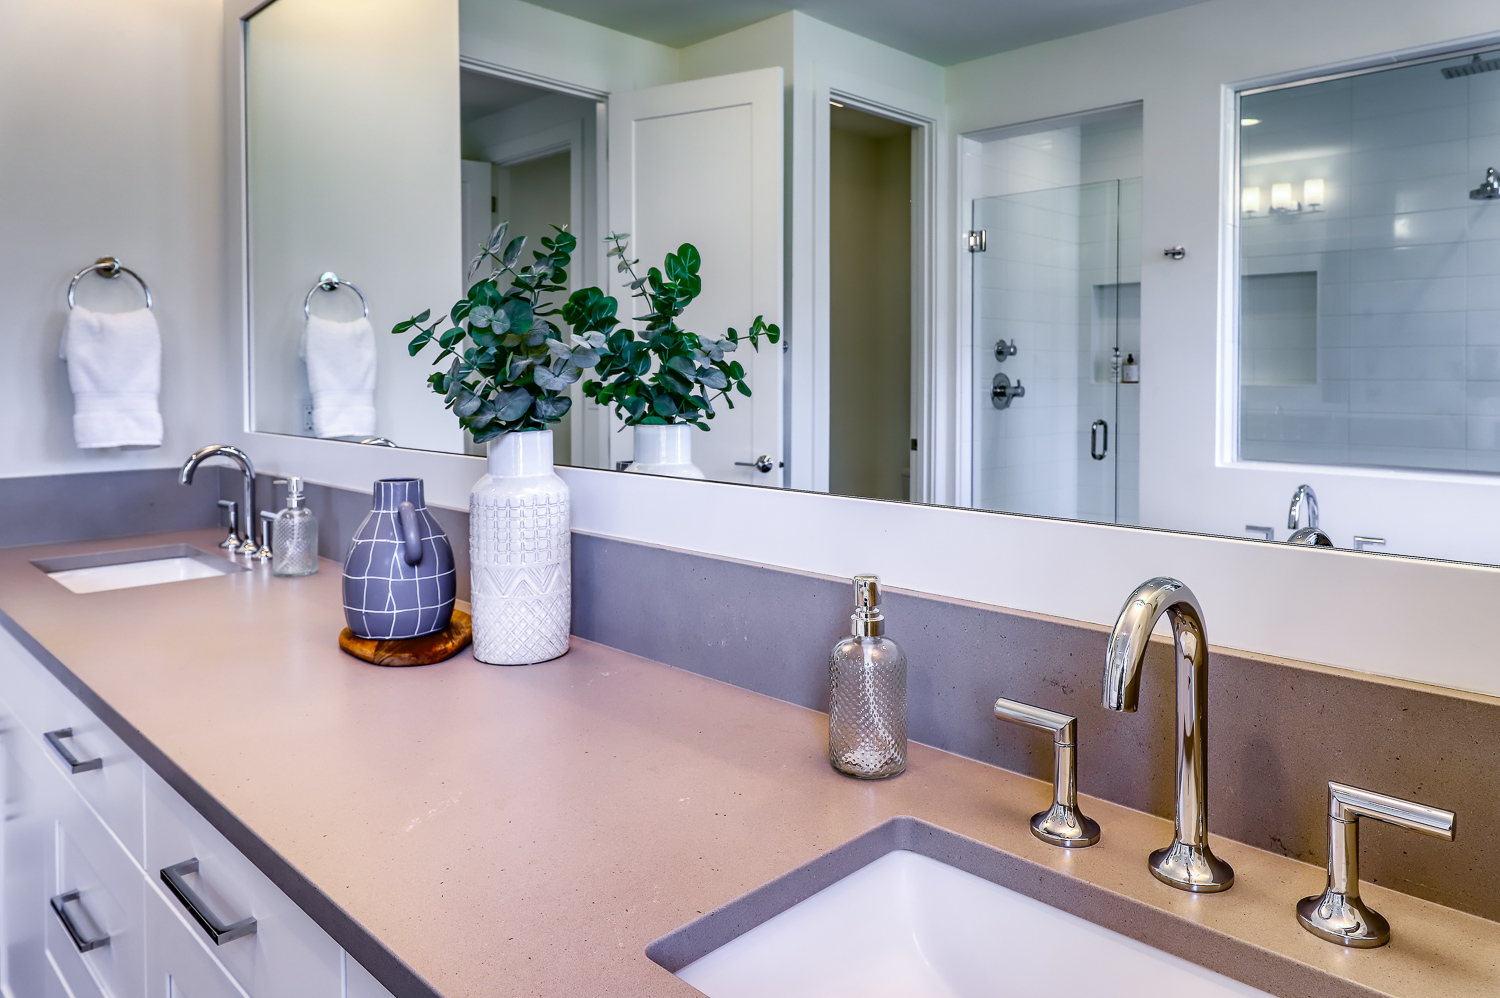 Sinks and Mirror